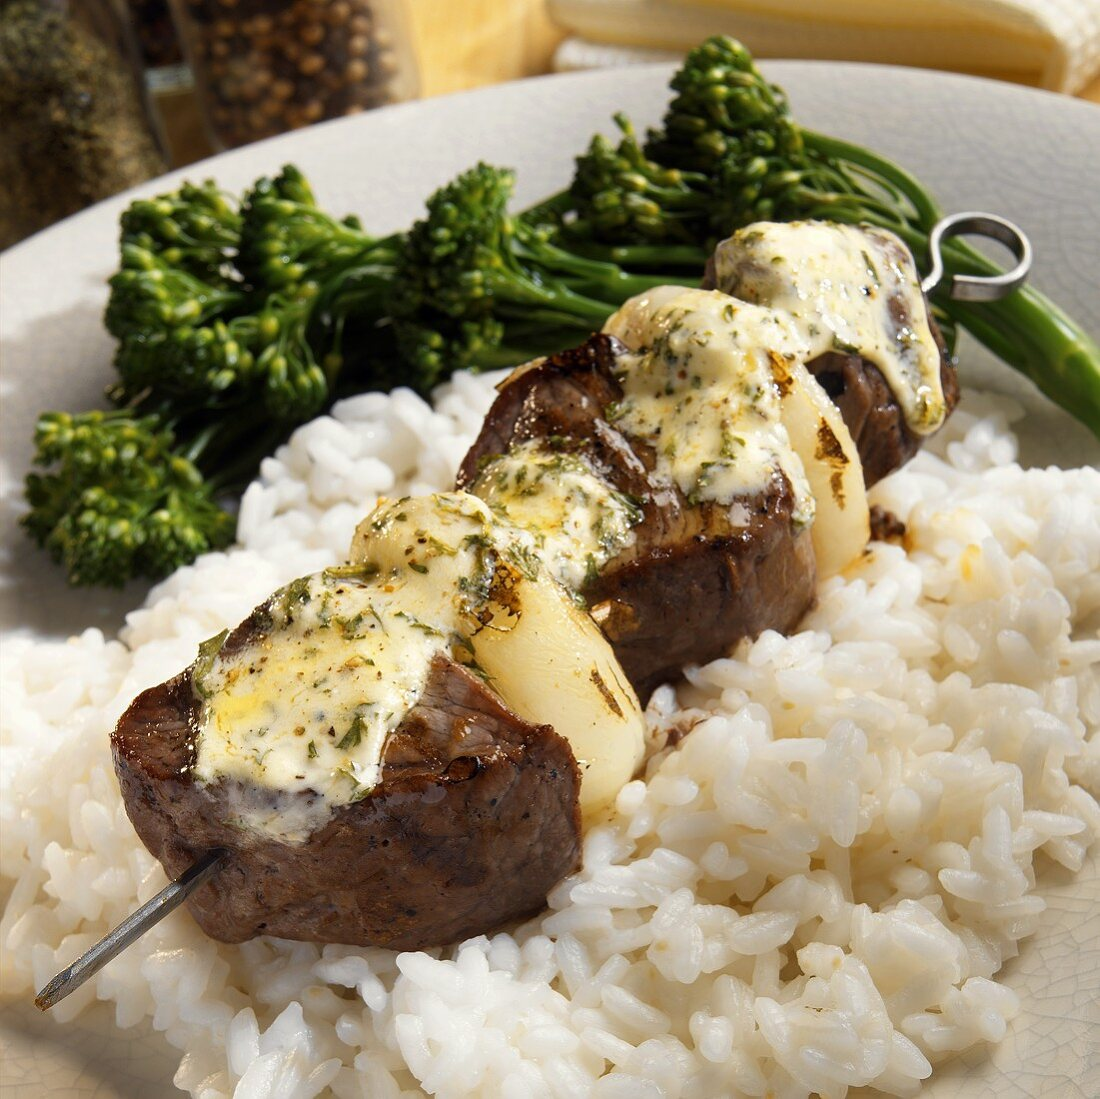 Beef kebab with onions and herb butter on rice